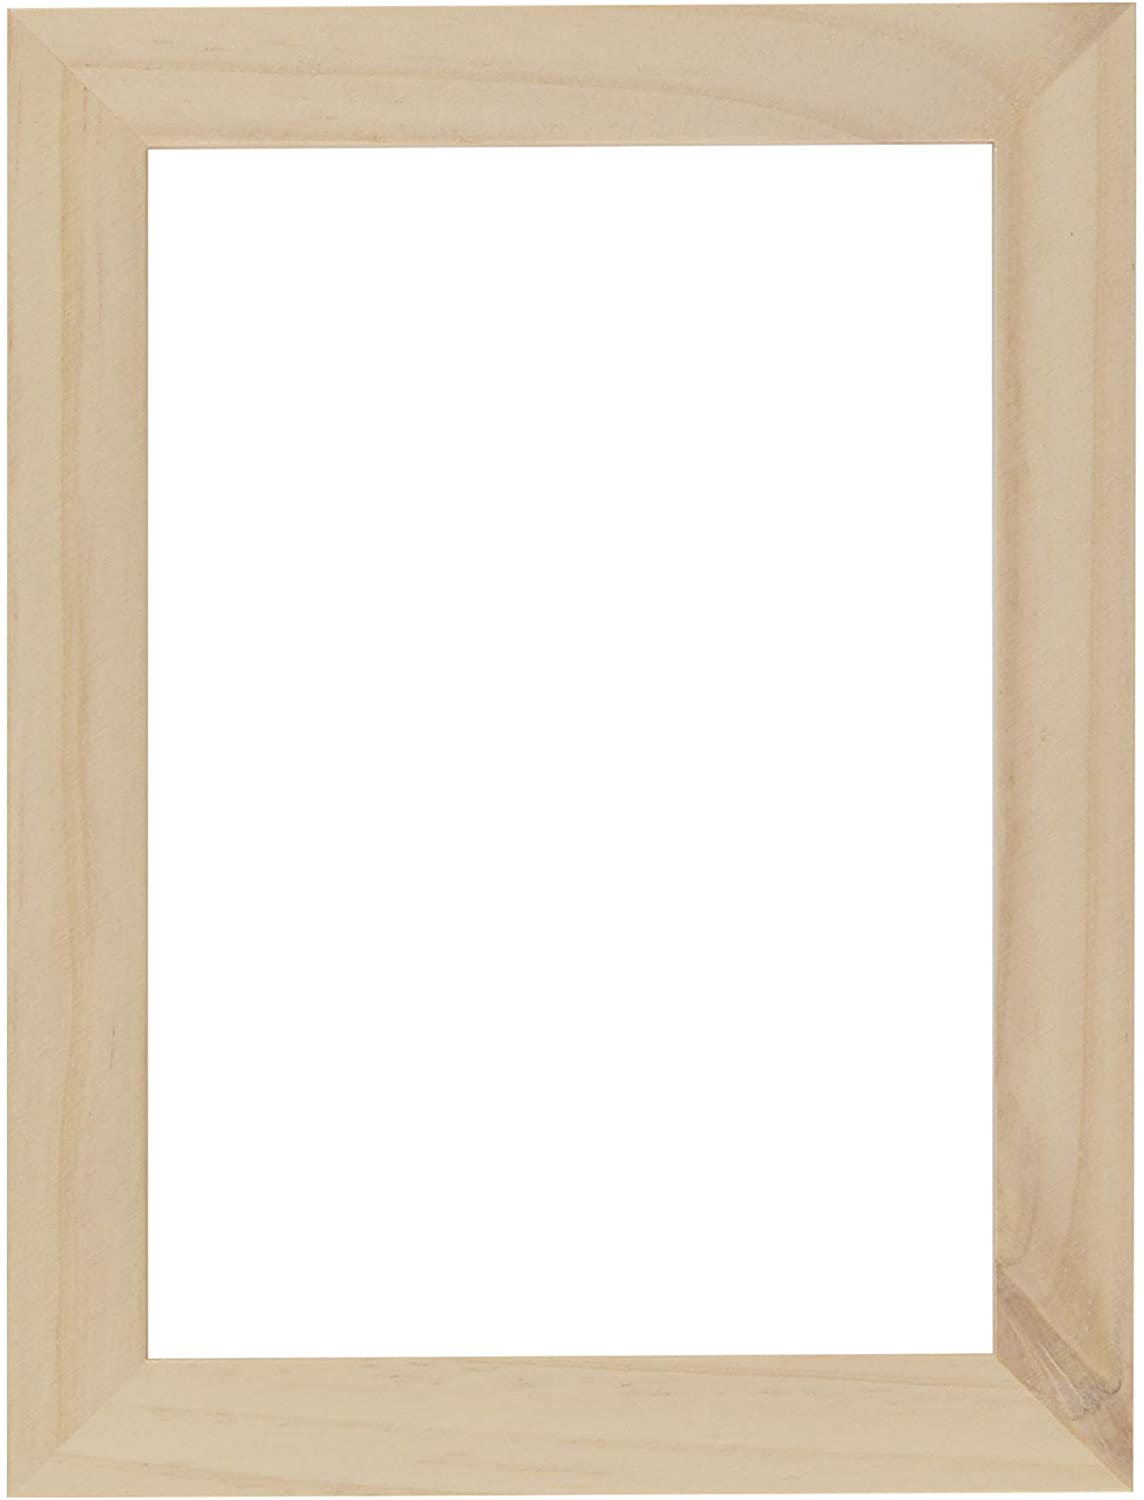 Ambiance Unfinished Wood Gallery Frame 5x7 in